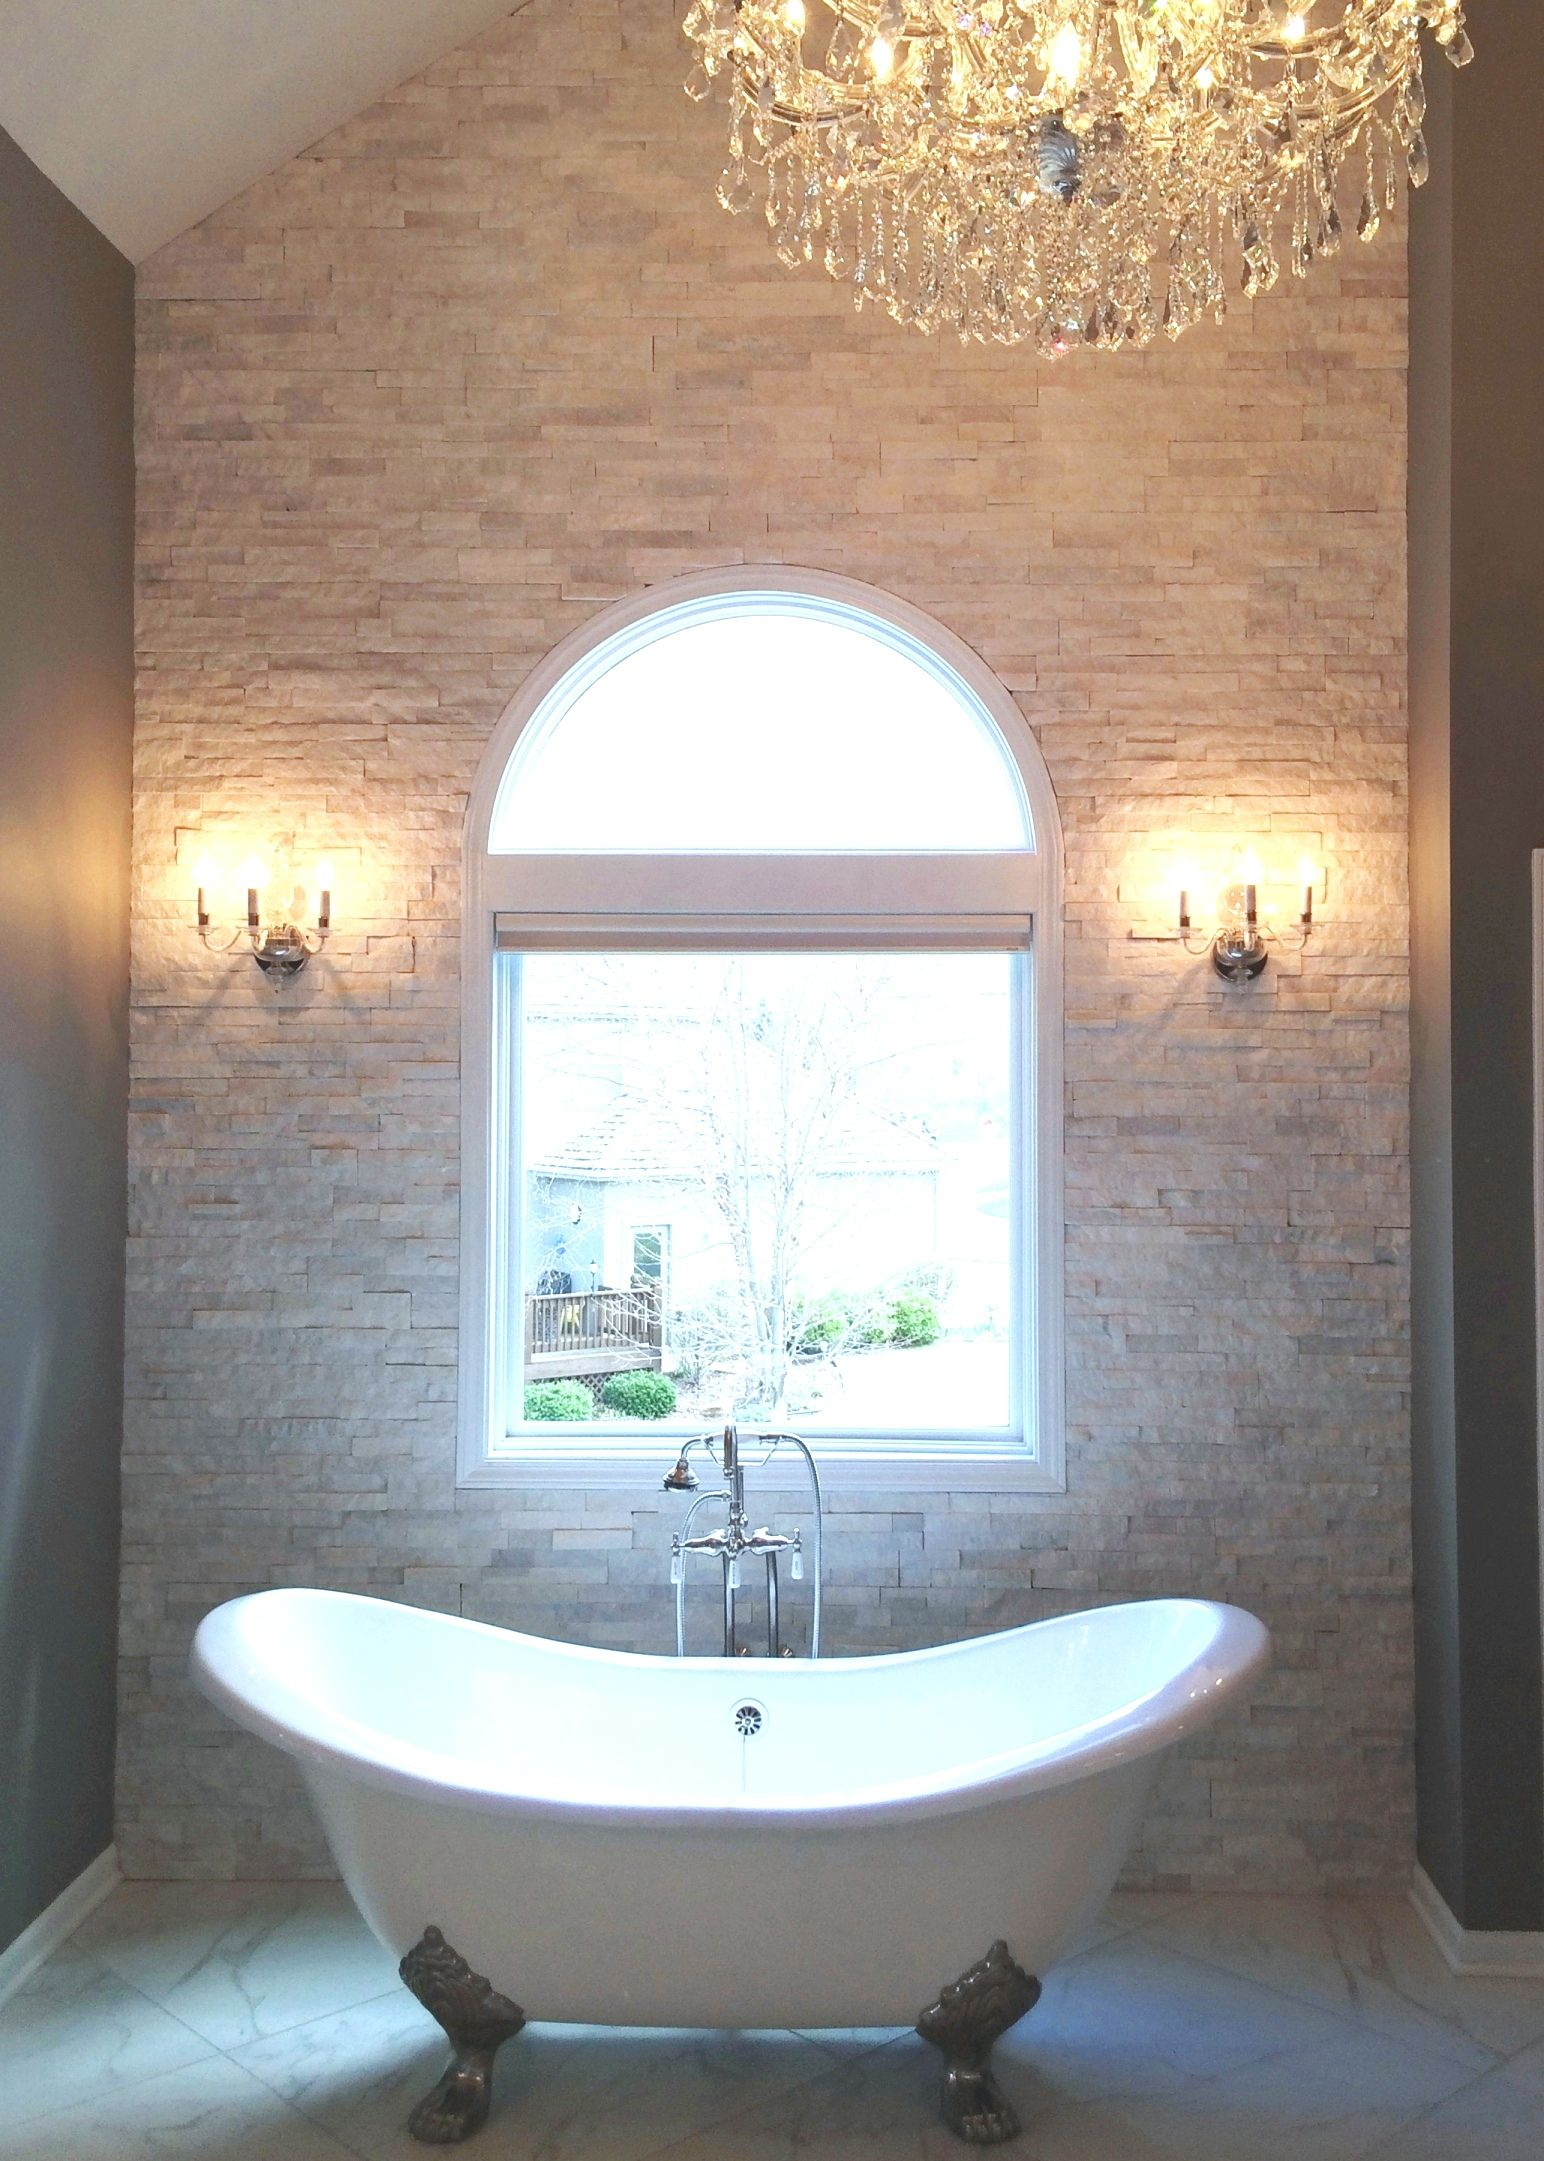 Hollywood bathroom decor - 50 Best Freestanding Tubs Pictures Of Stylish Freestanding Soaking Bathtubs